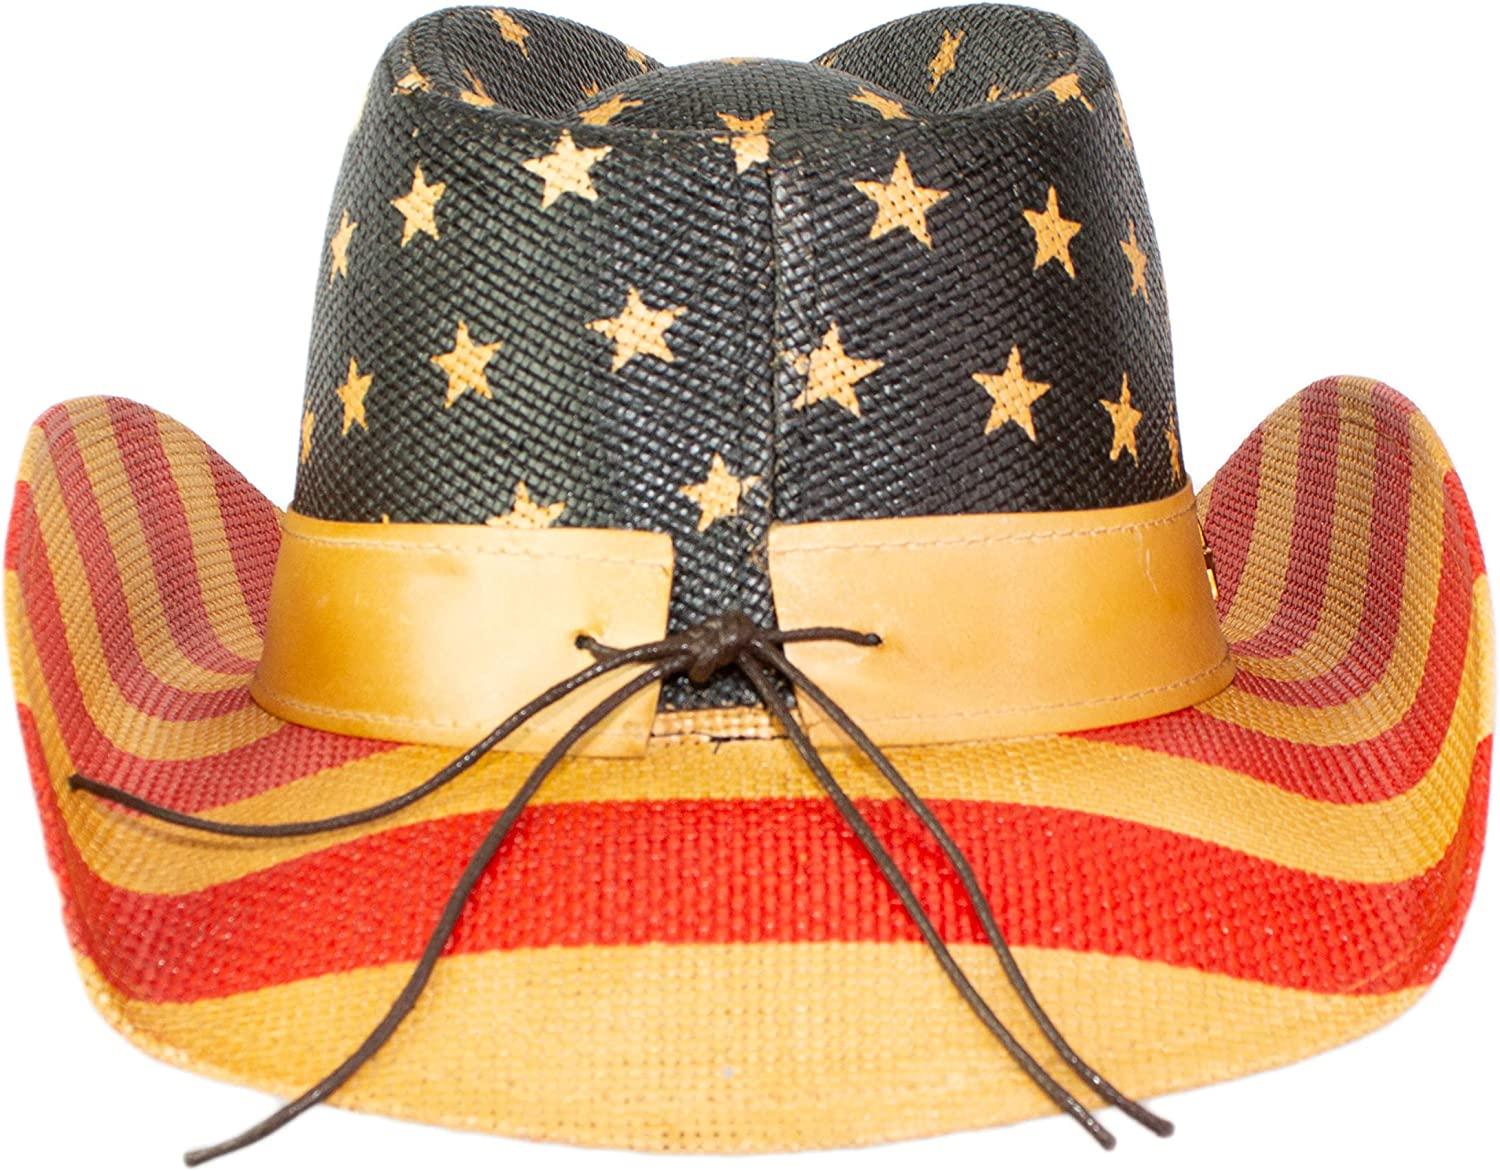 Vintage Patriotic USA American Flag Stars and Stripes Western Cowboy Hat for Men or Women Shapable Brim